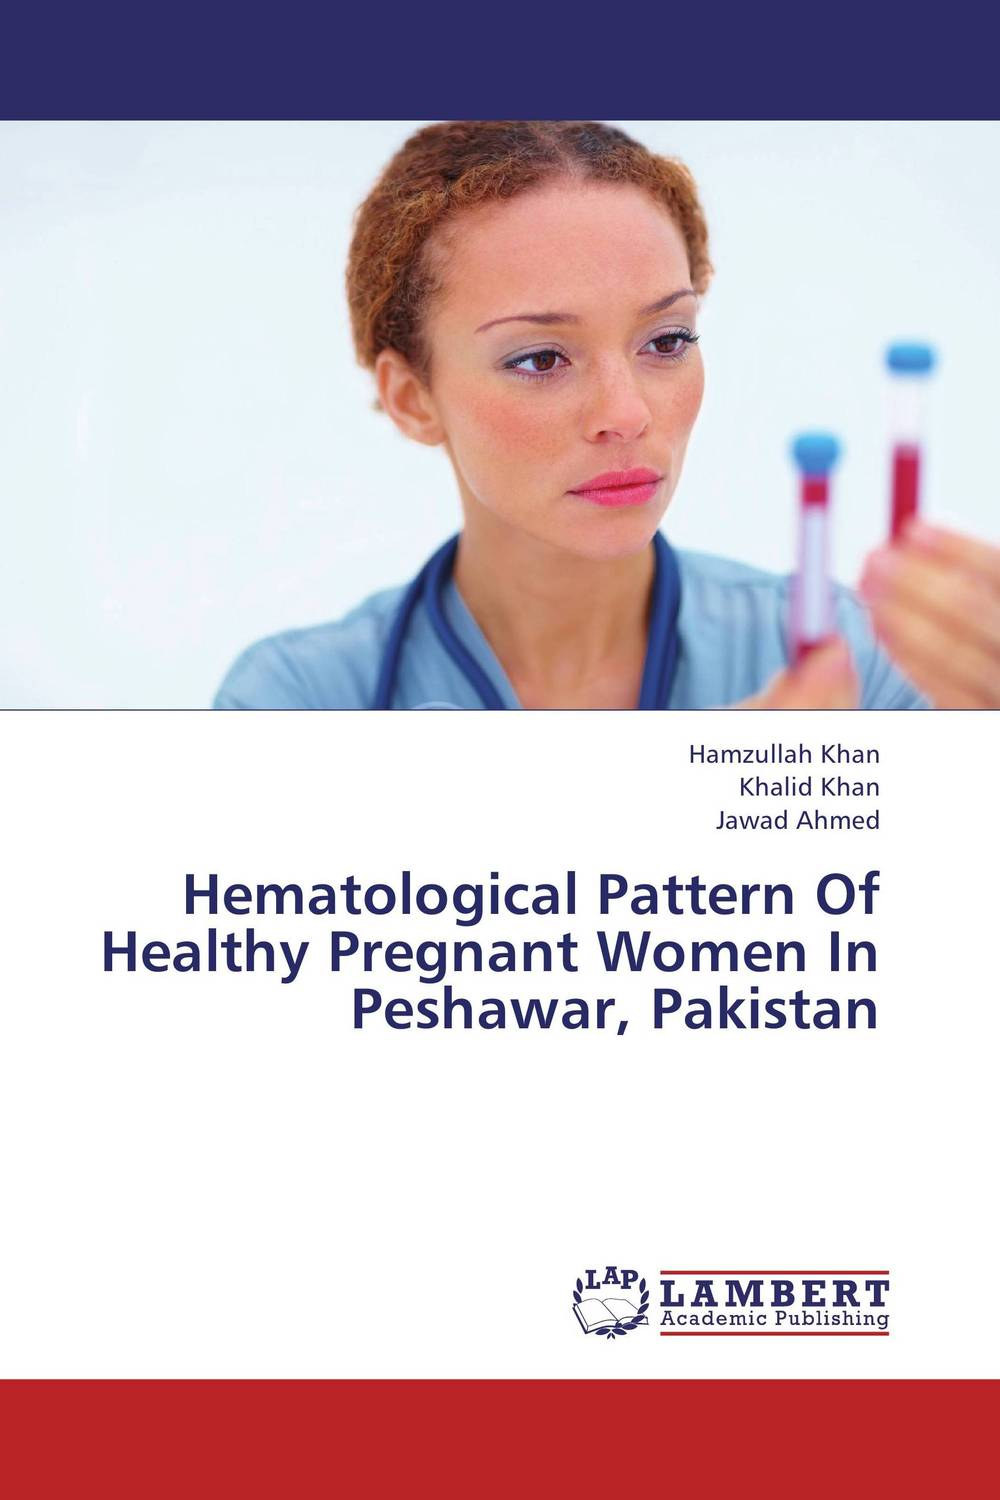 Hematological Pattern Of Healthy Pregnant Women In Peshawar, Pakistan фен elchim 3900 healthy ionic red 03073 07